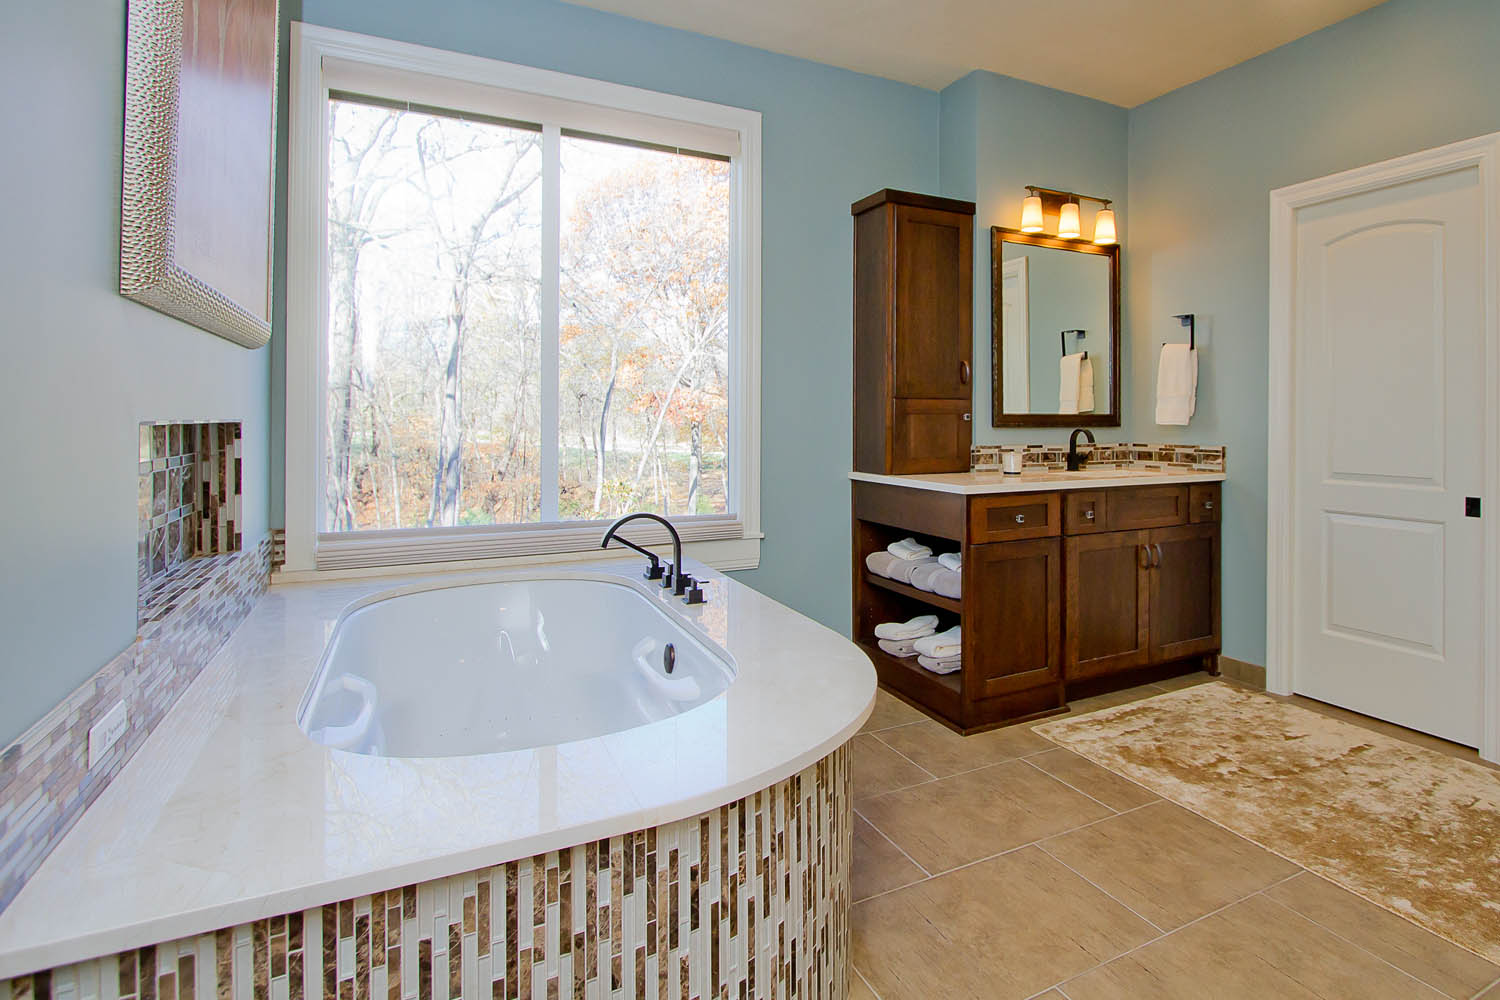 Wall to wall bathroom vanity local bathroom remodelers for Local bathroom remodelers